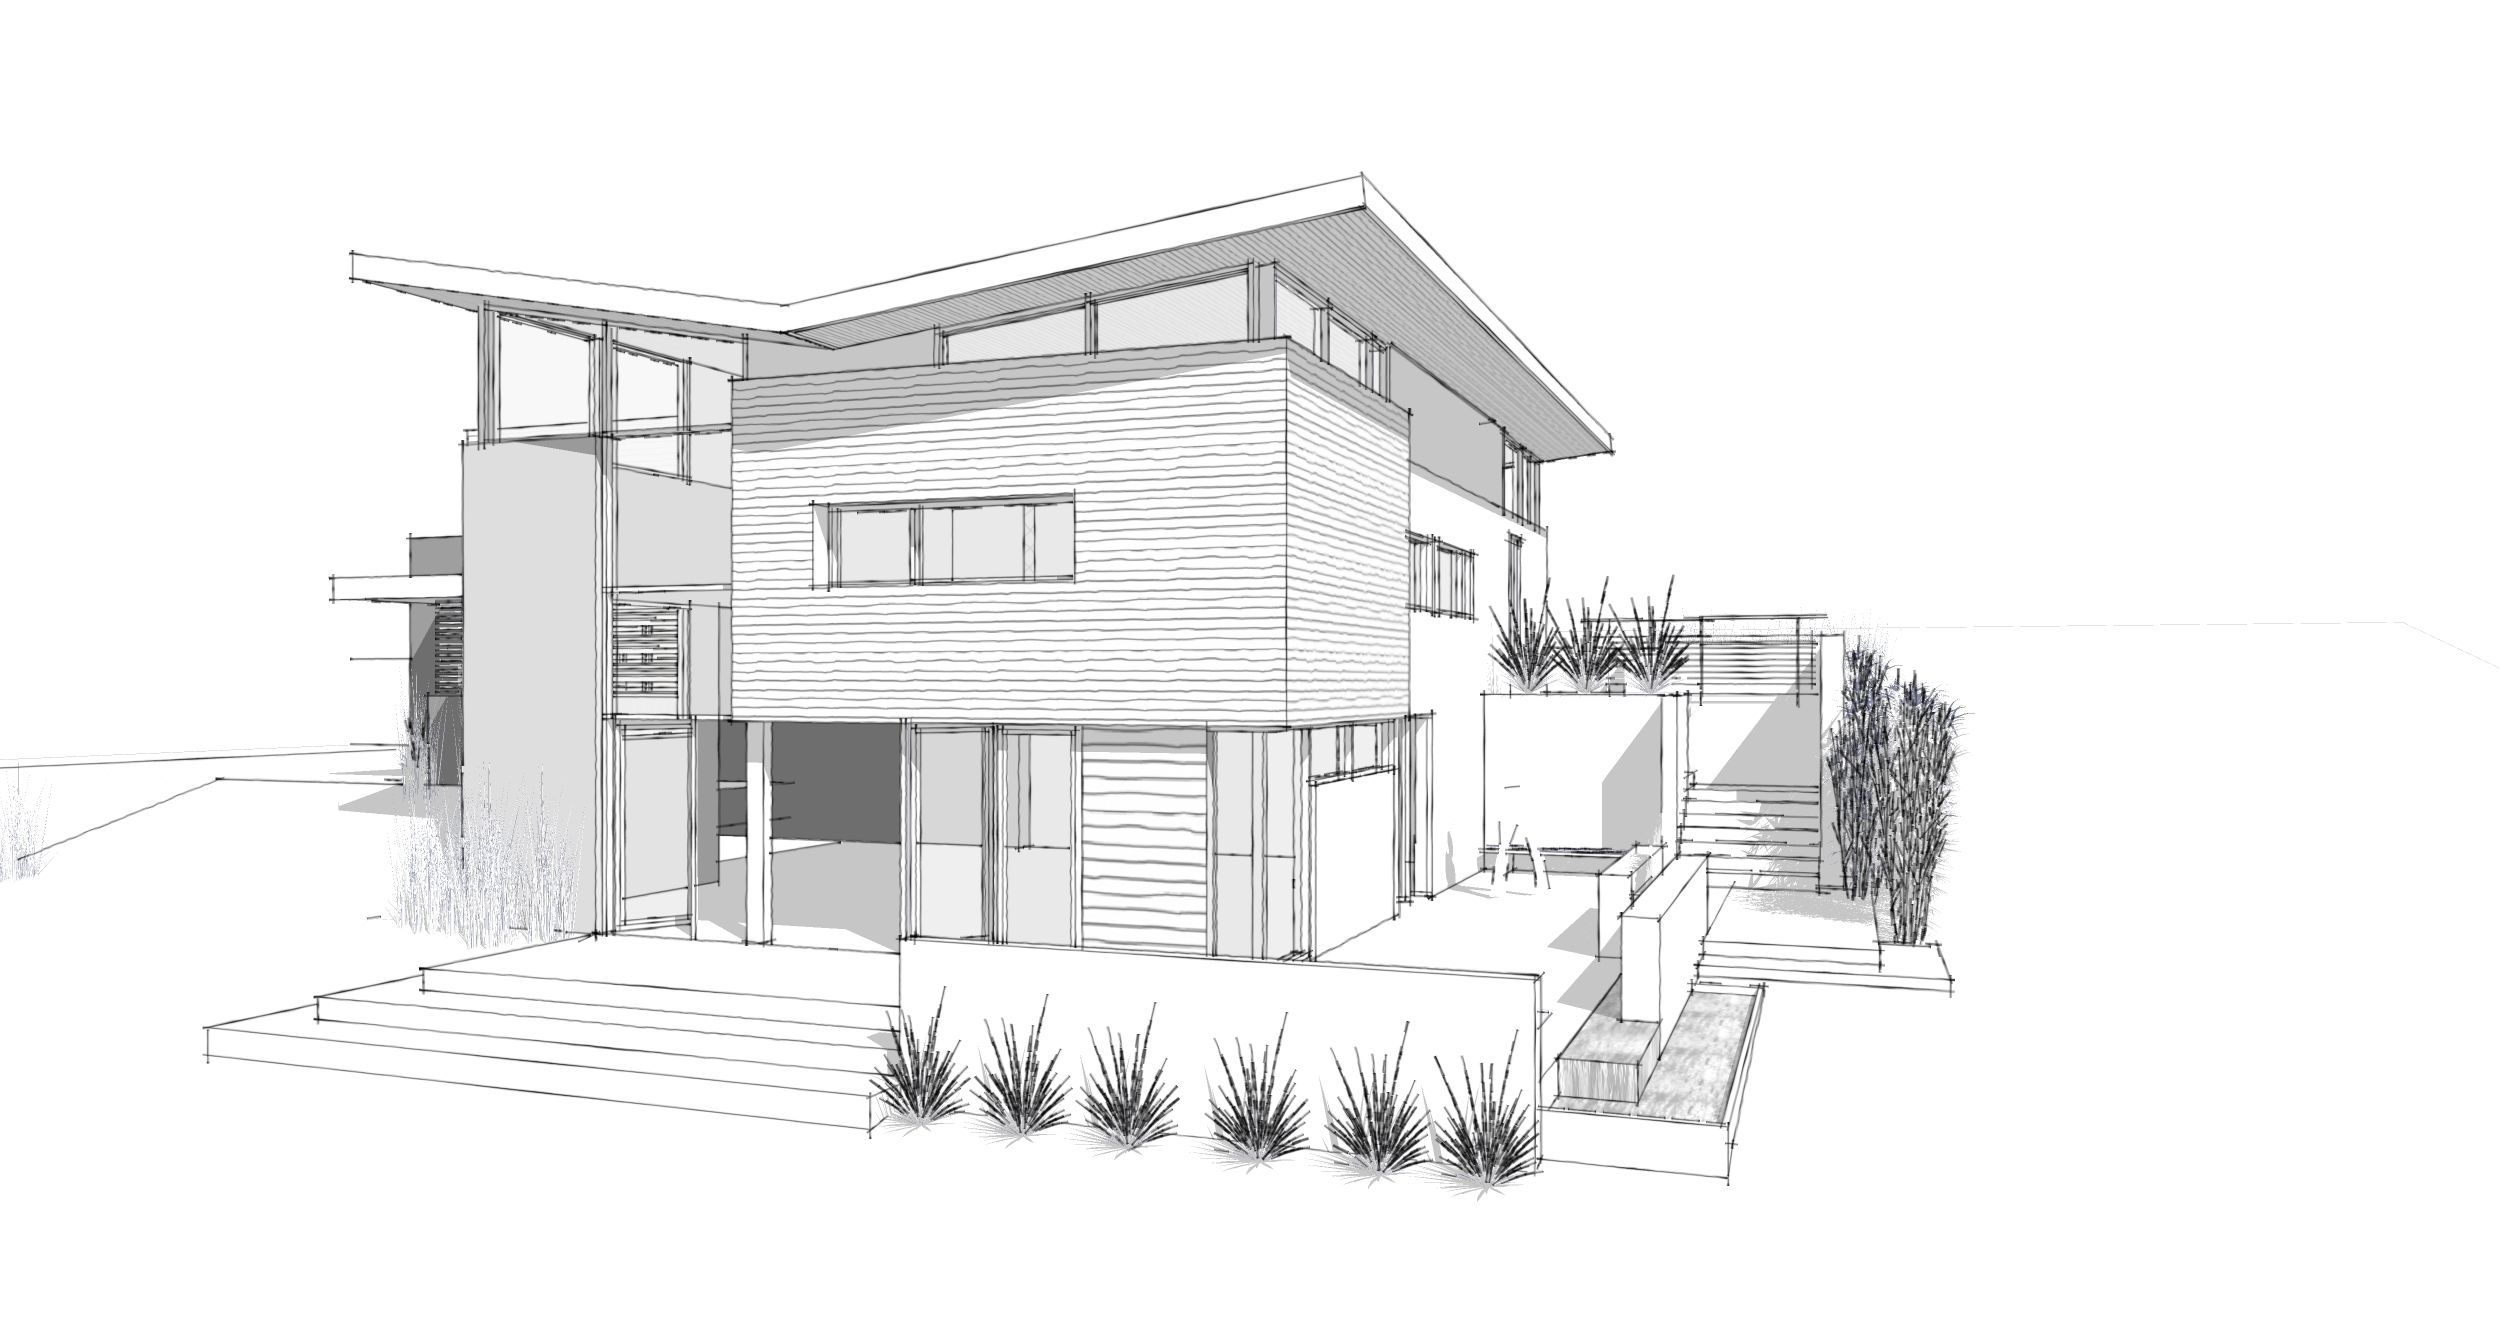 Awesome Architecture Design Ideas Images 2019 Bobs House Drawing